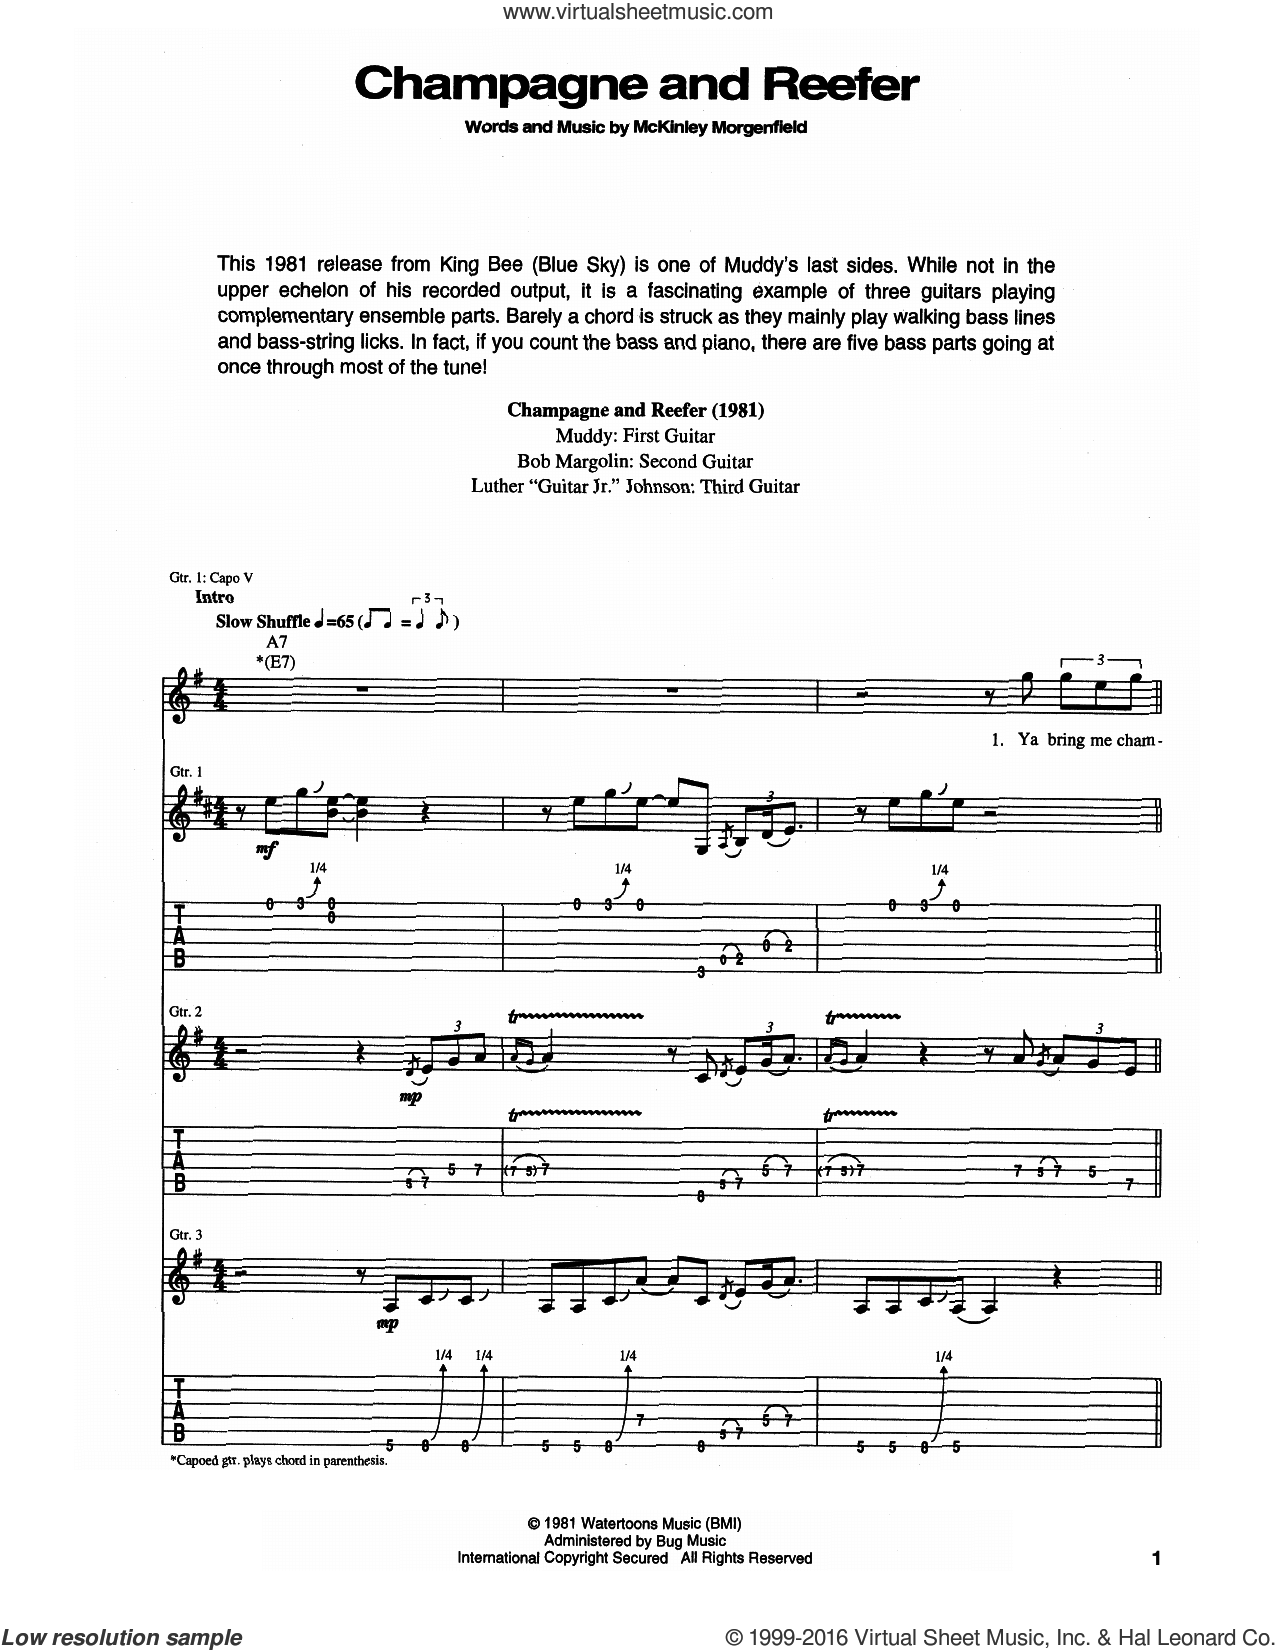 Champagne And Reefer sheet music for guitar (tablature) by Muddy Waters, intermediate skill level